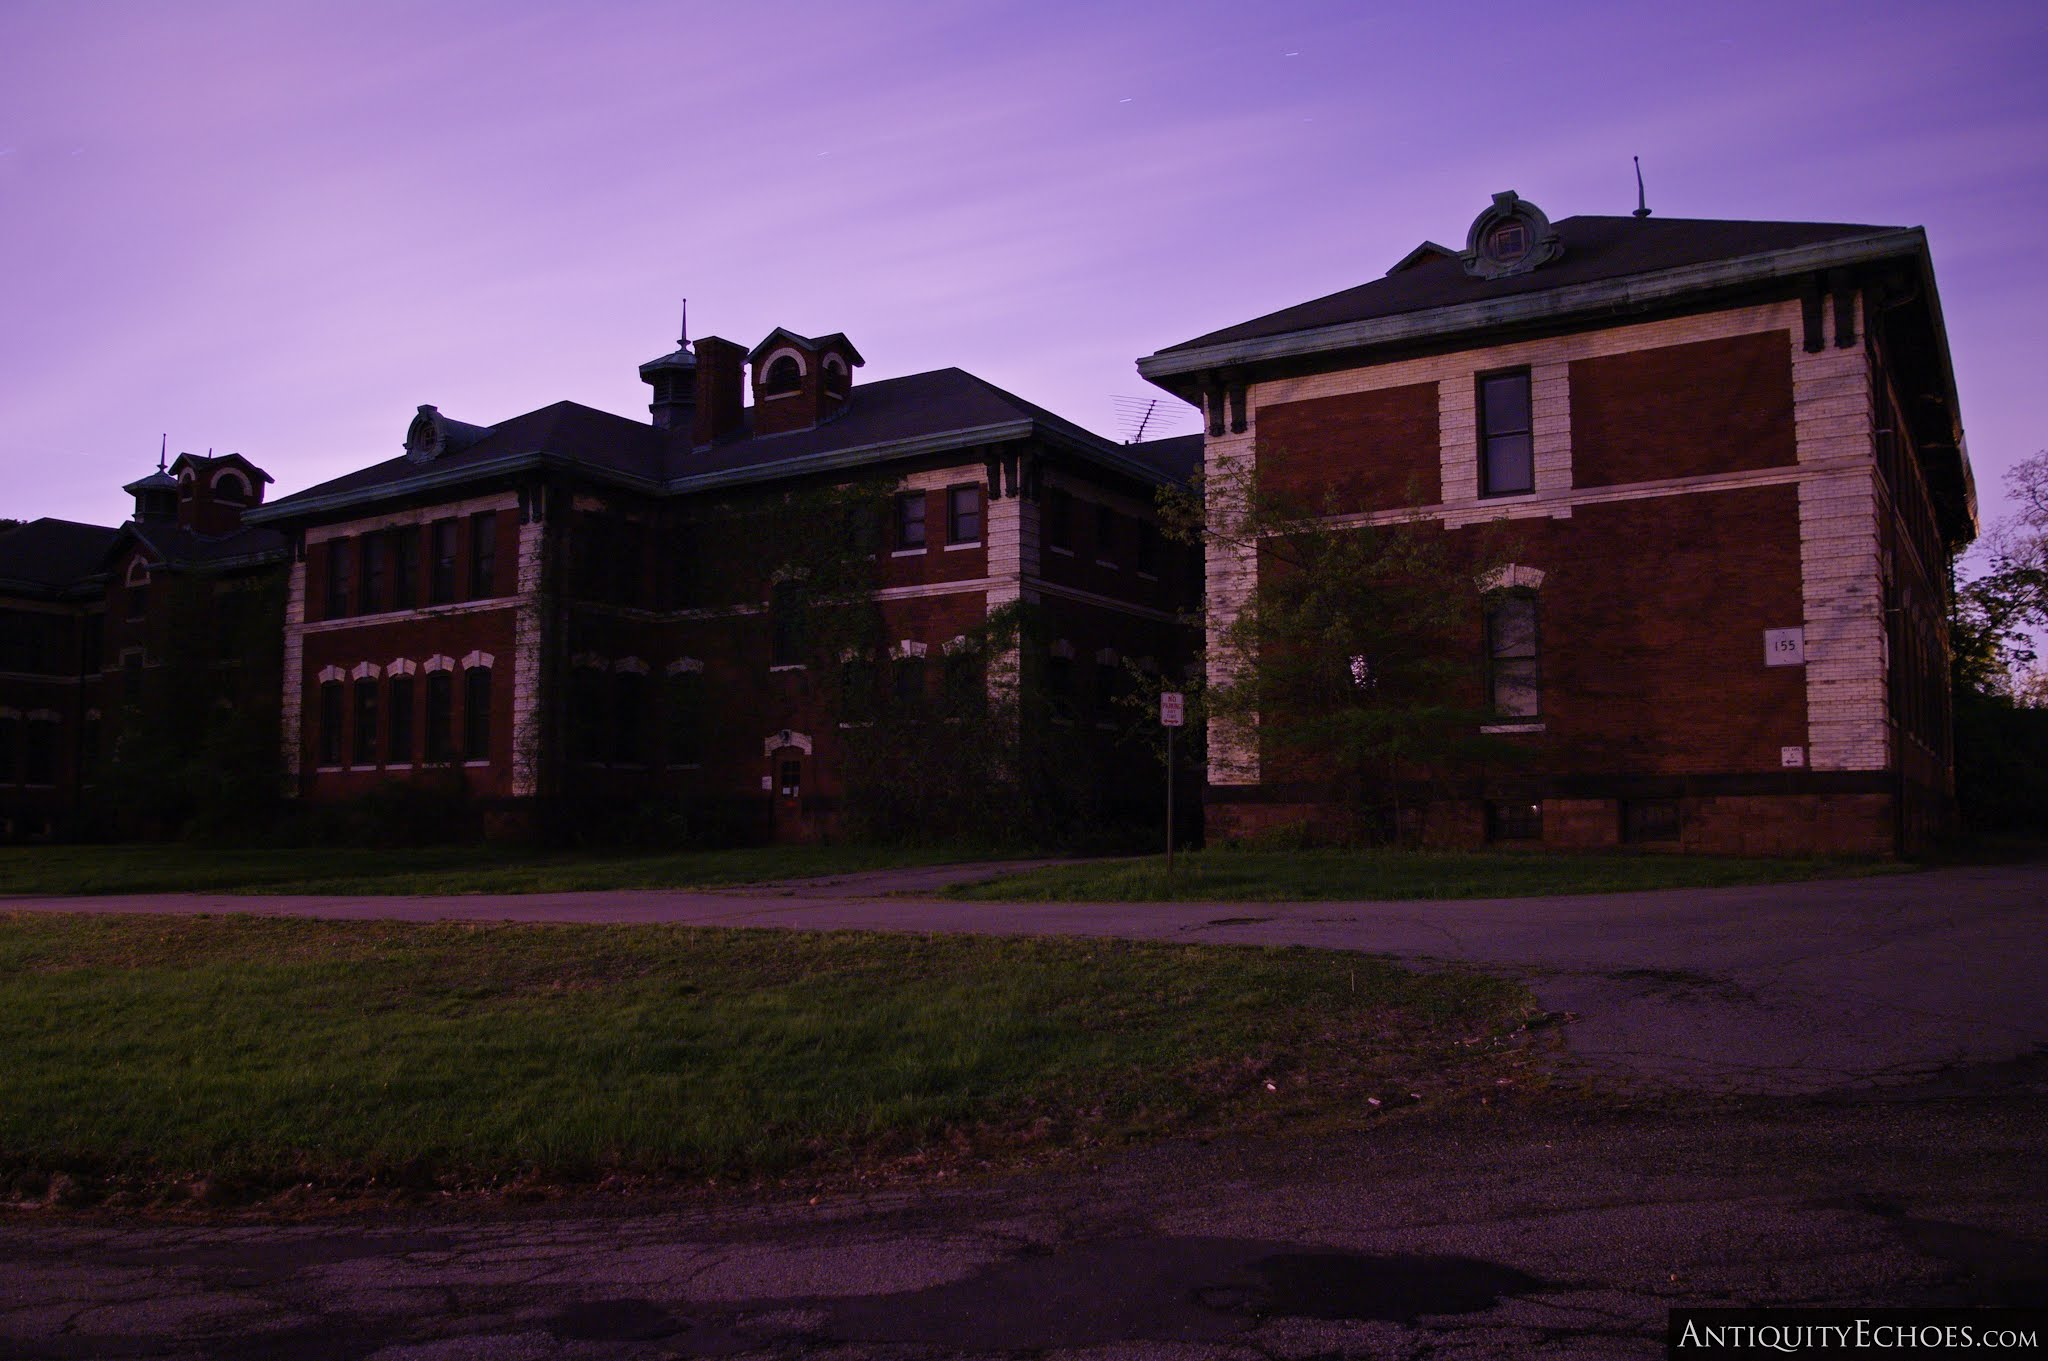 Overbrook Asylum - Building Five and the Night